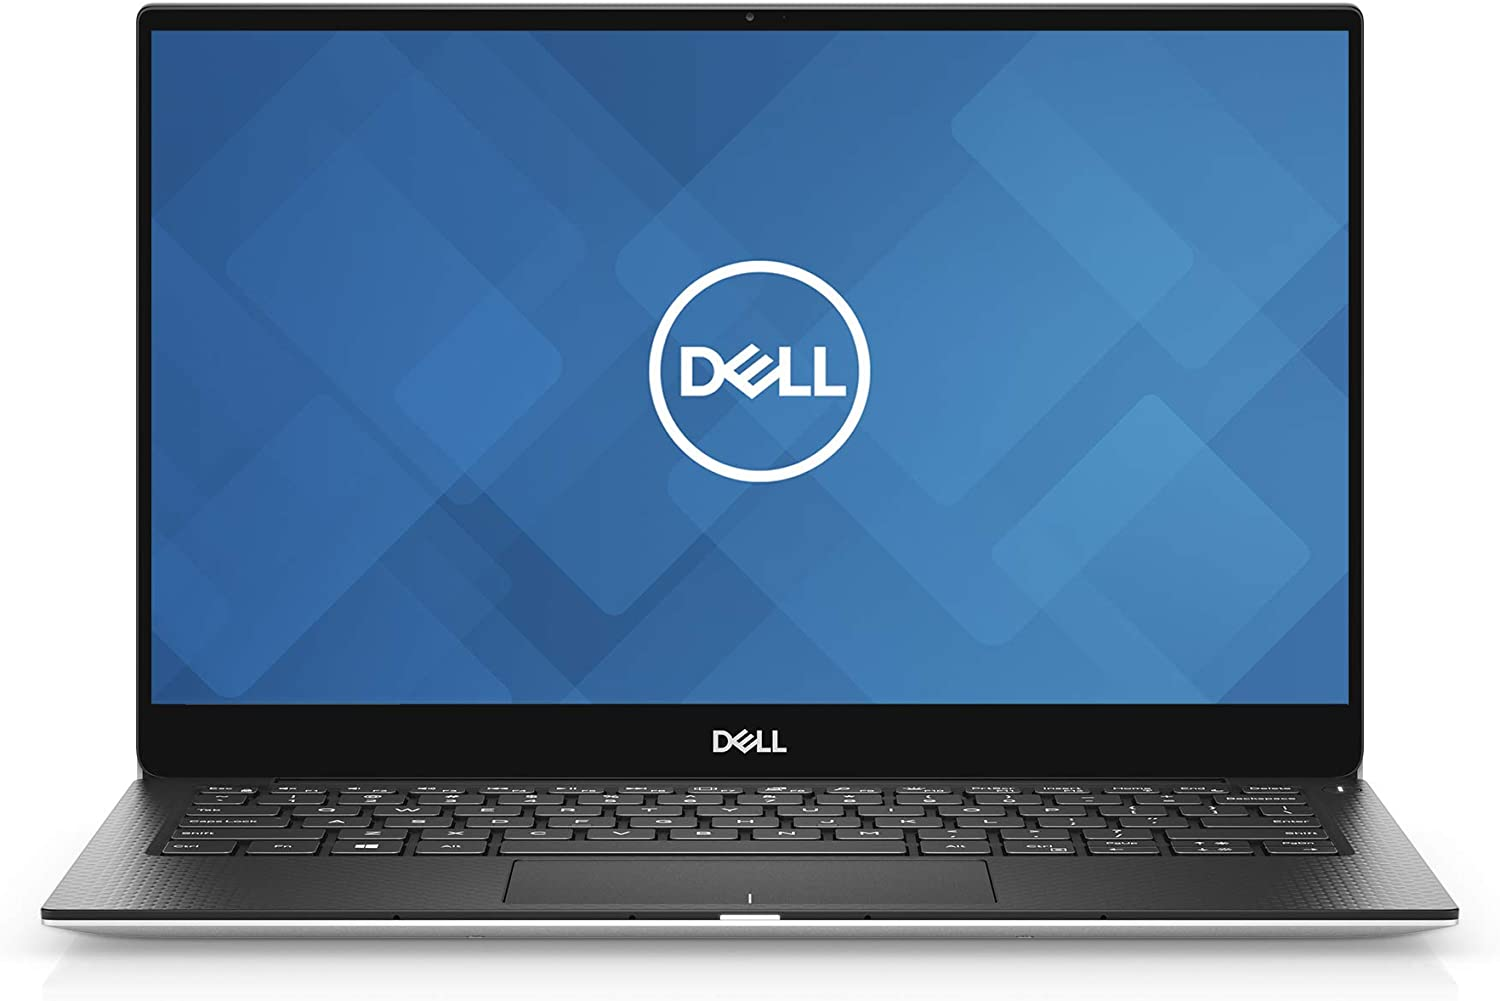 Newest Generation Dell XPS13 9380 Laptop, Intel Core i7-8565U Processor Up to 4.6 GHz, 16GB 2133MHz RAM, 1TB PCIe SSD, 13.3 4K UHD (3840x2160) InfinityEdge Touch Display, Fingerprint Reader (Renewed)